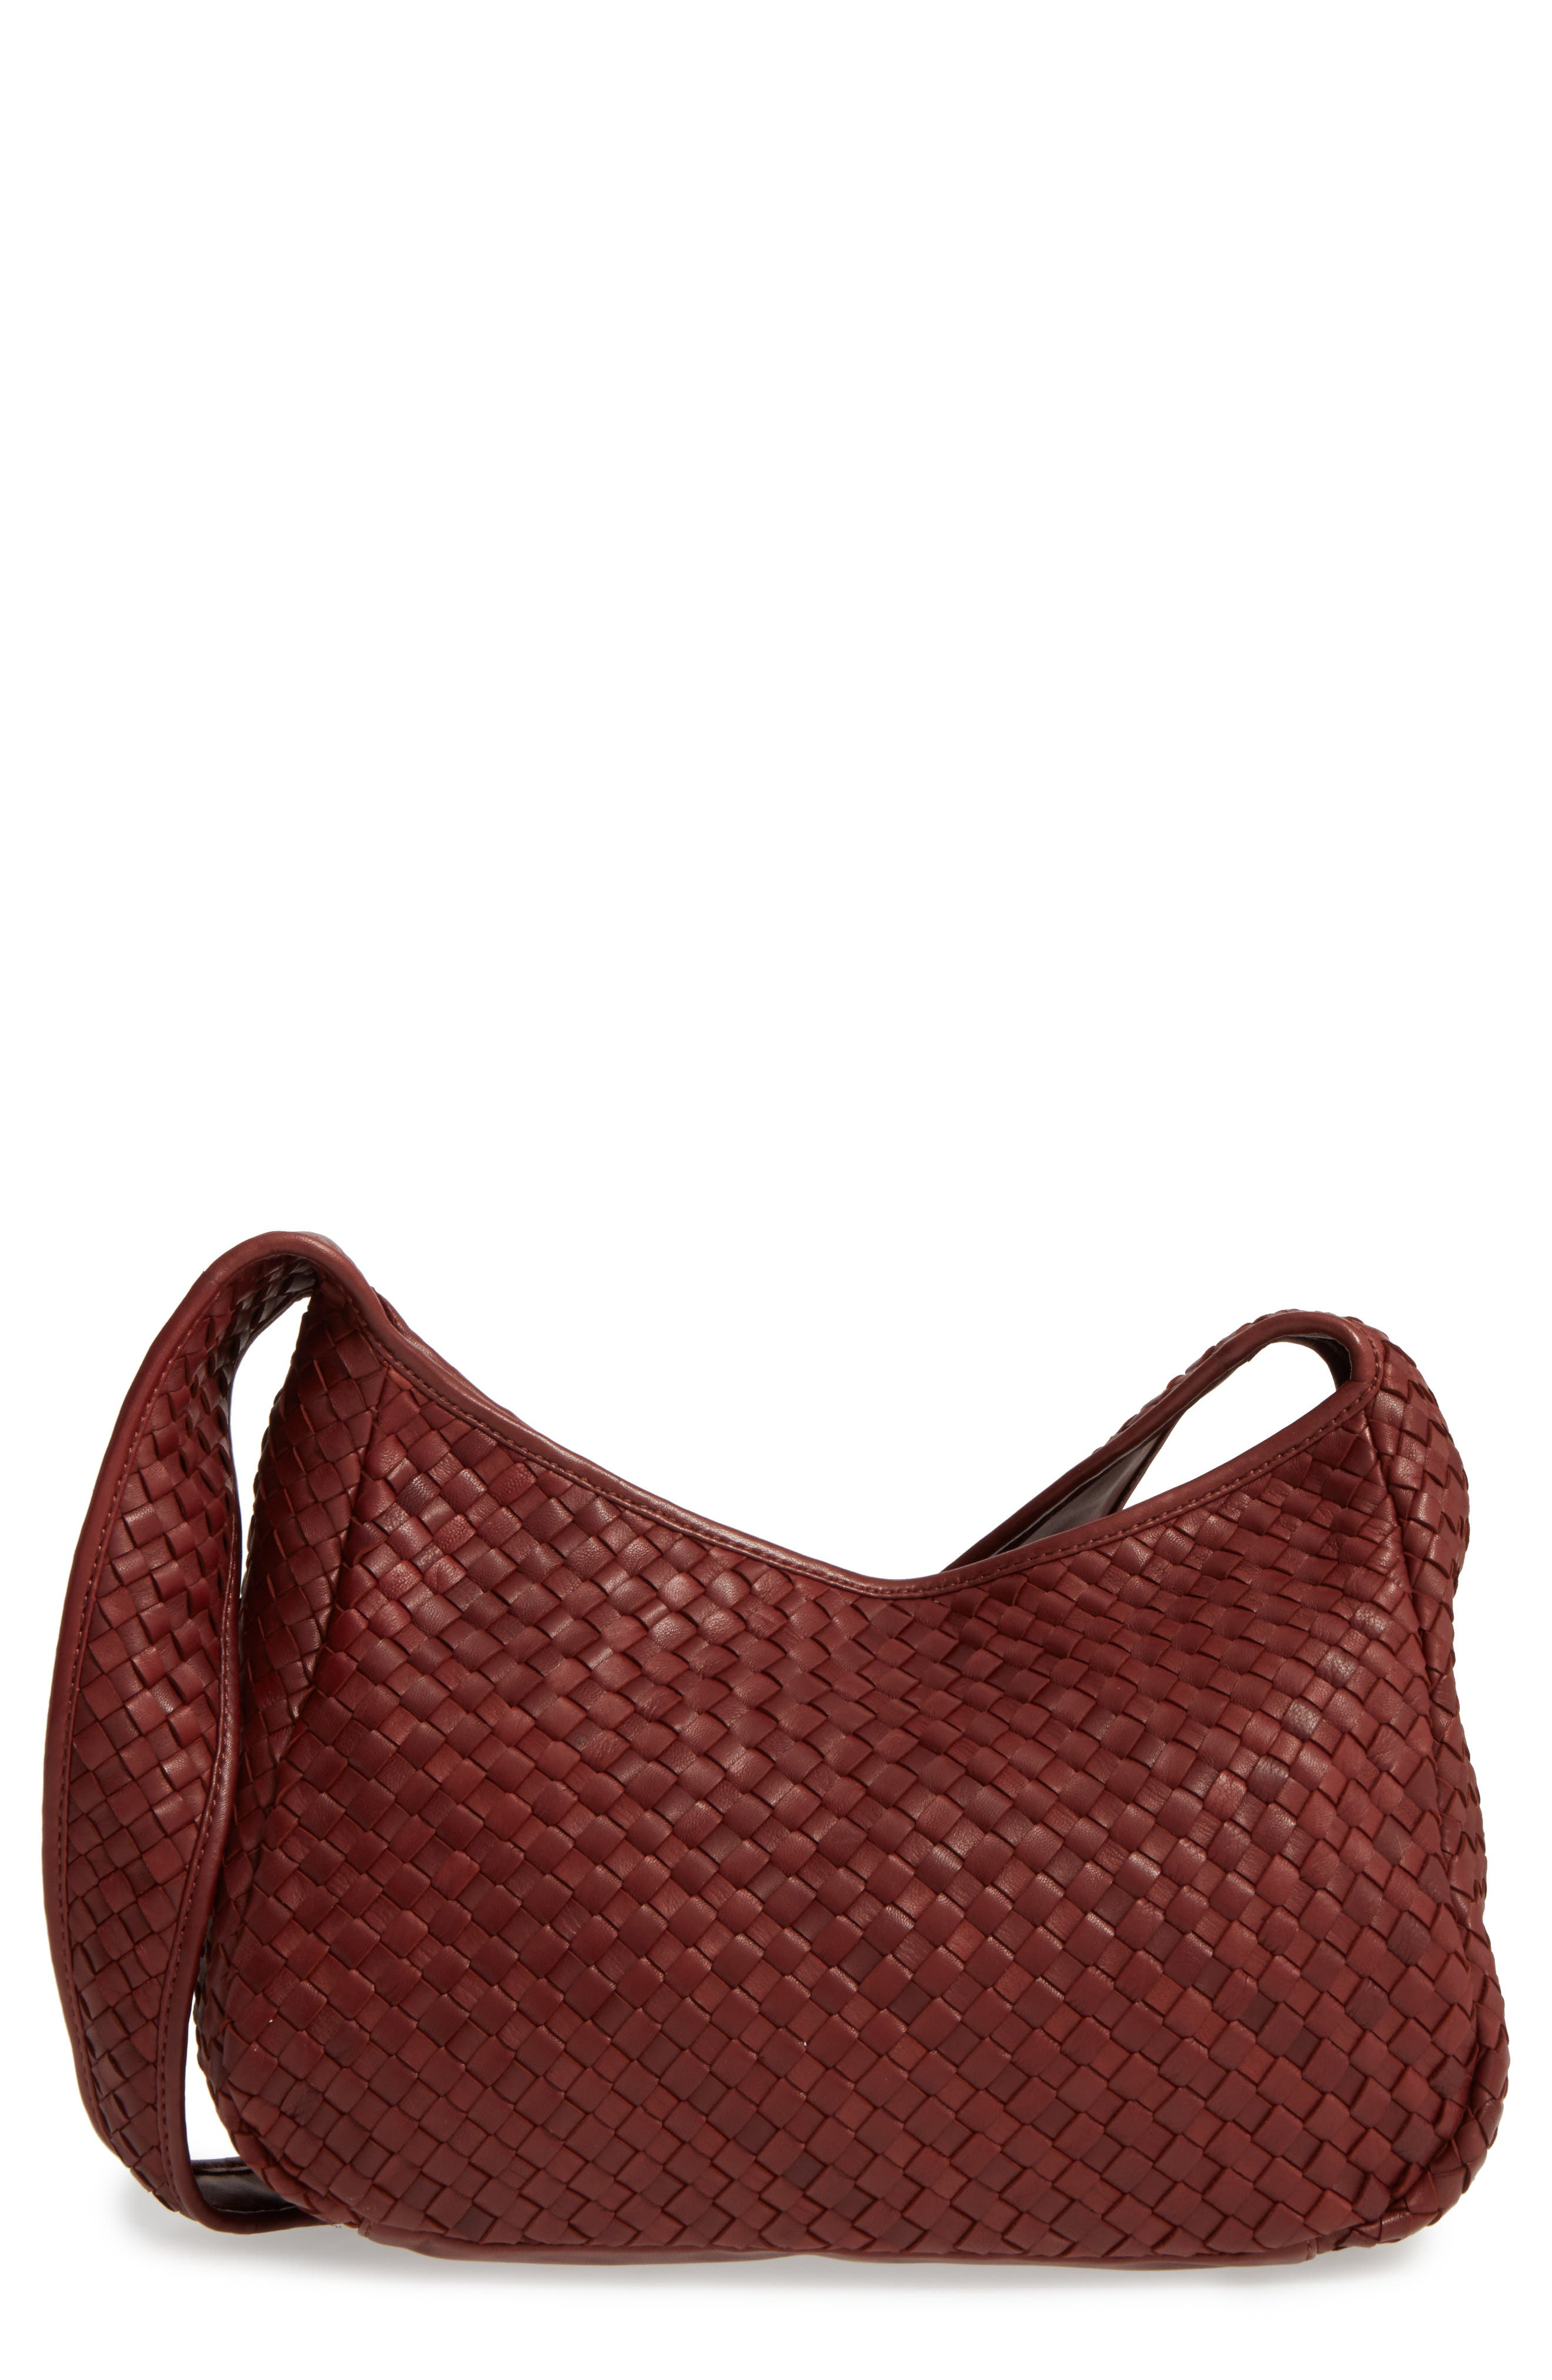 Robert Zur Small Delia Leather Hobo